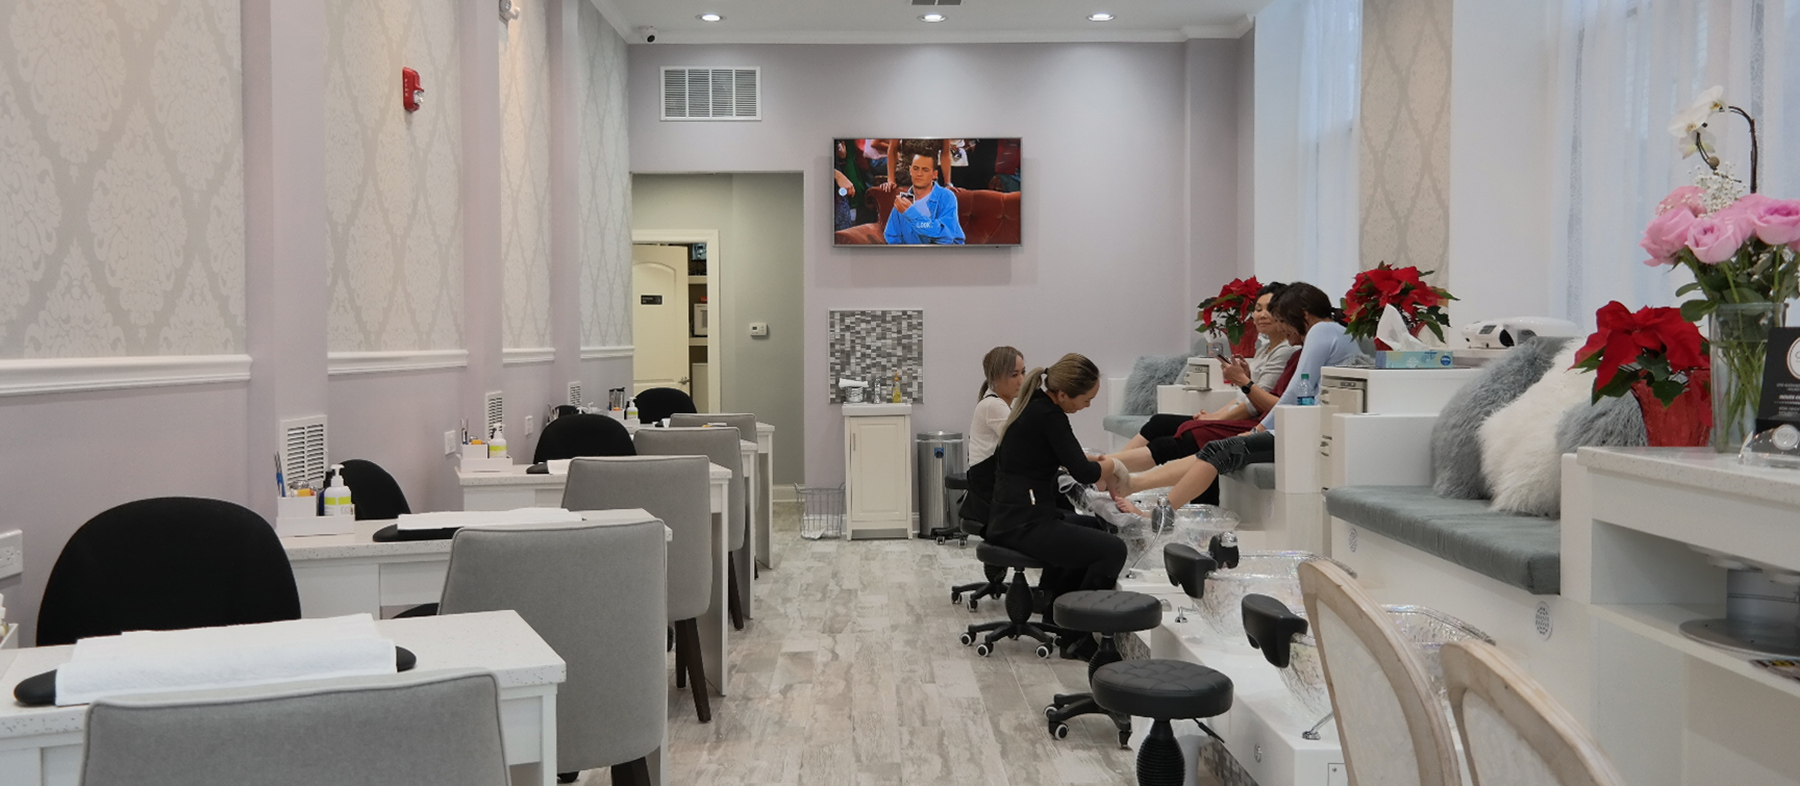 Coco Nails & Spa | Wilmette\'s Top Luxury Nail Salon & Spa